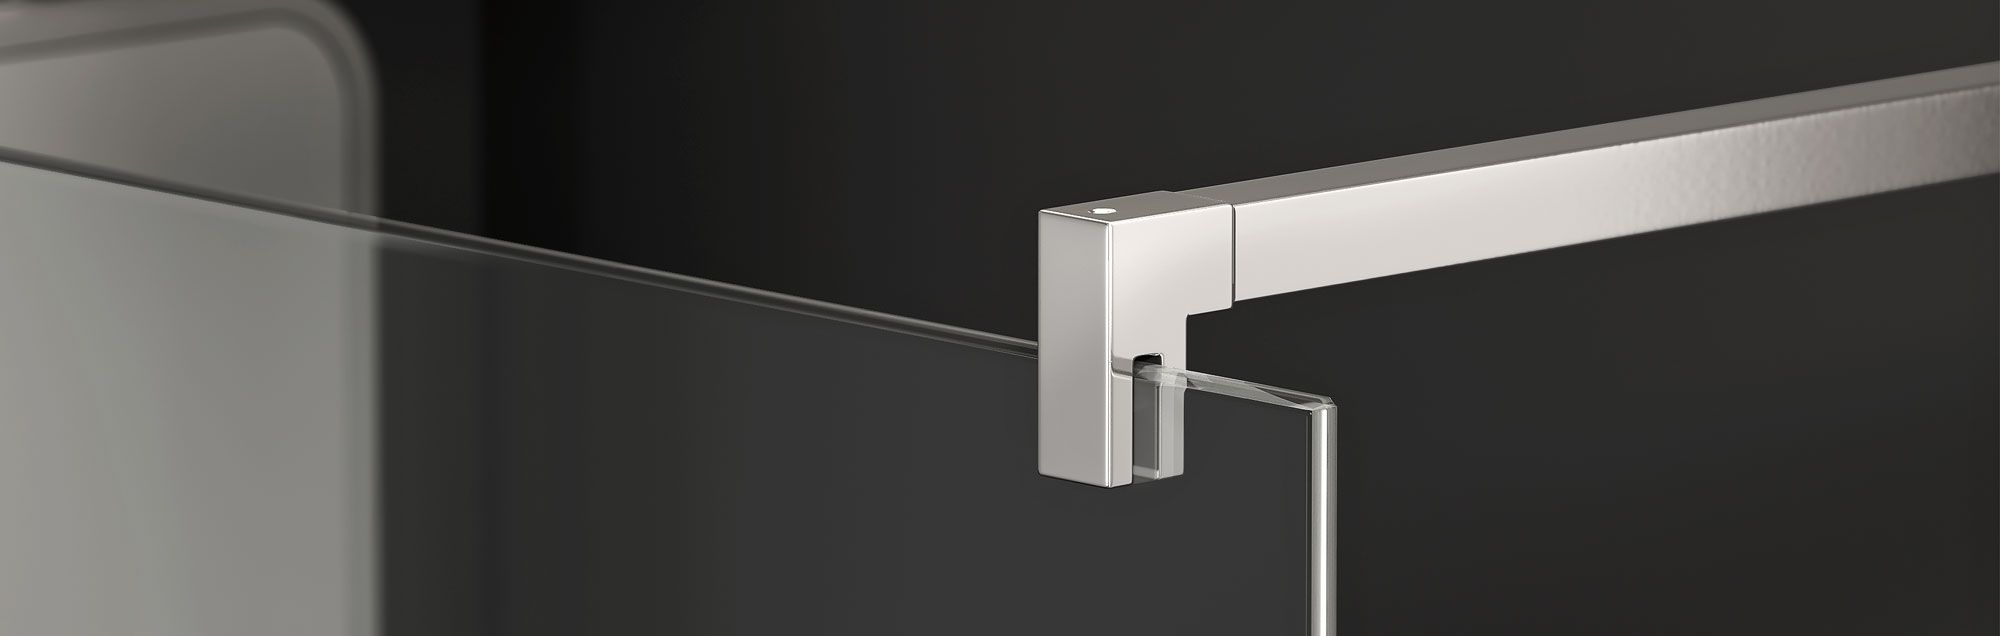 PROFILTEK walk-in made to measure bathroom enclosures